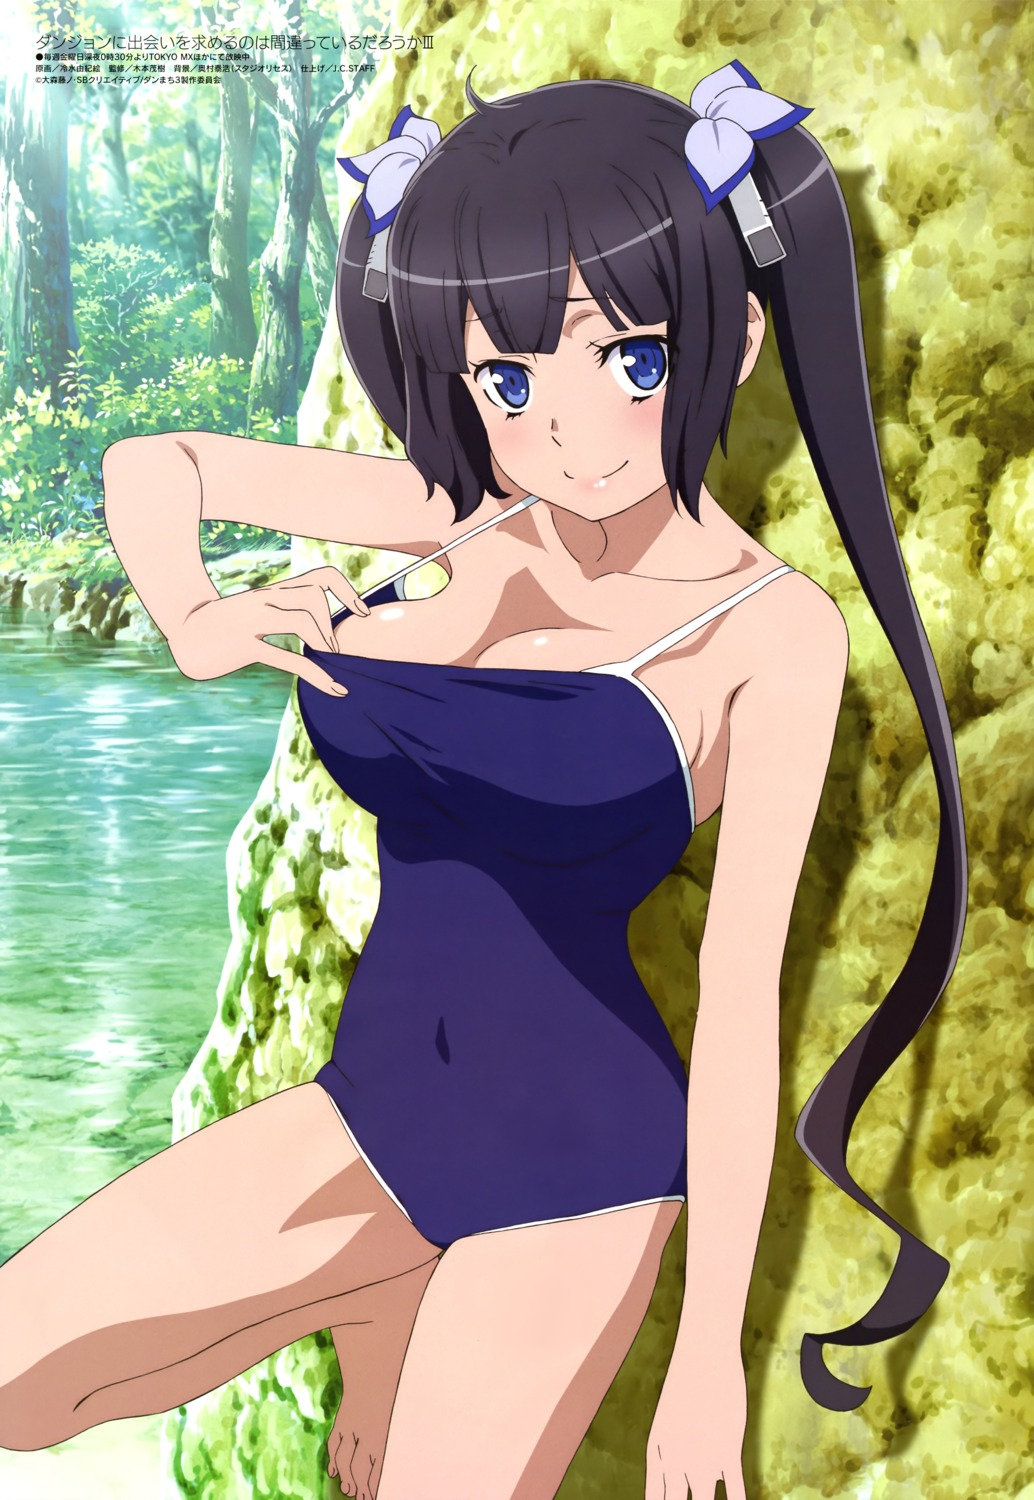 dungeon_ni_deai_wo_motomeru_no_wa_machigatteiru_darou_ka hestia_(dungeon) hiyamizu_yukie school_swimsuit swimsuits undressing